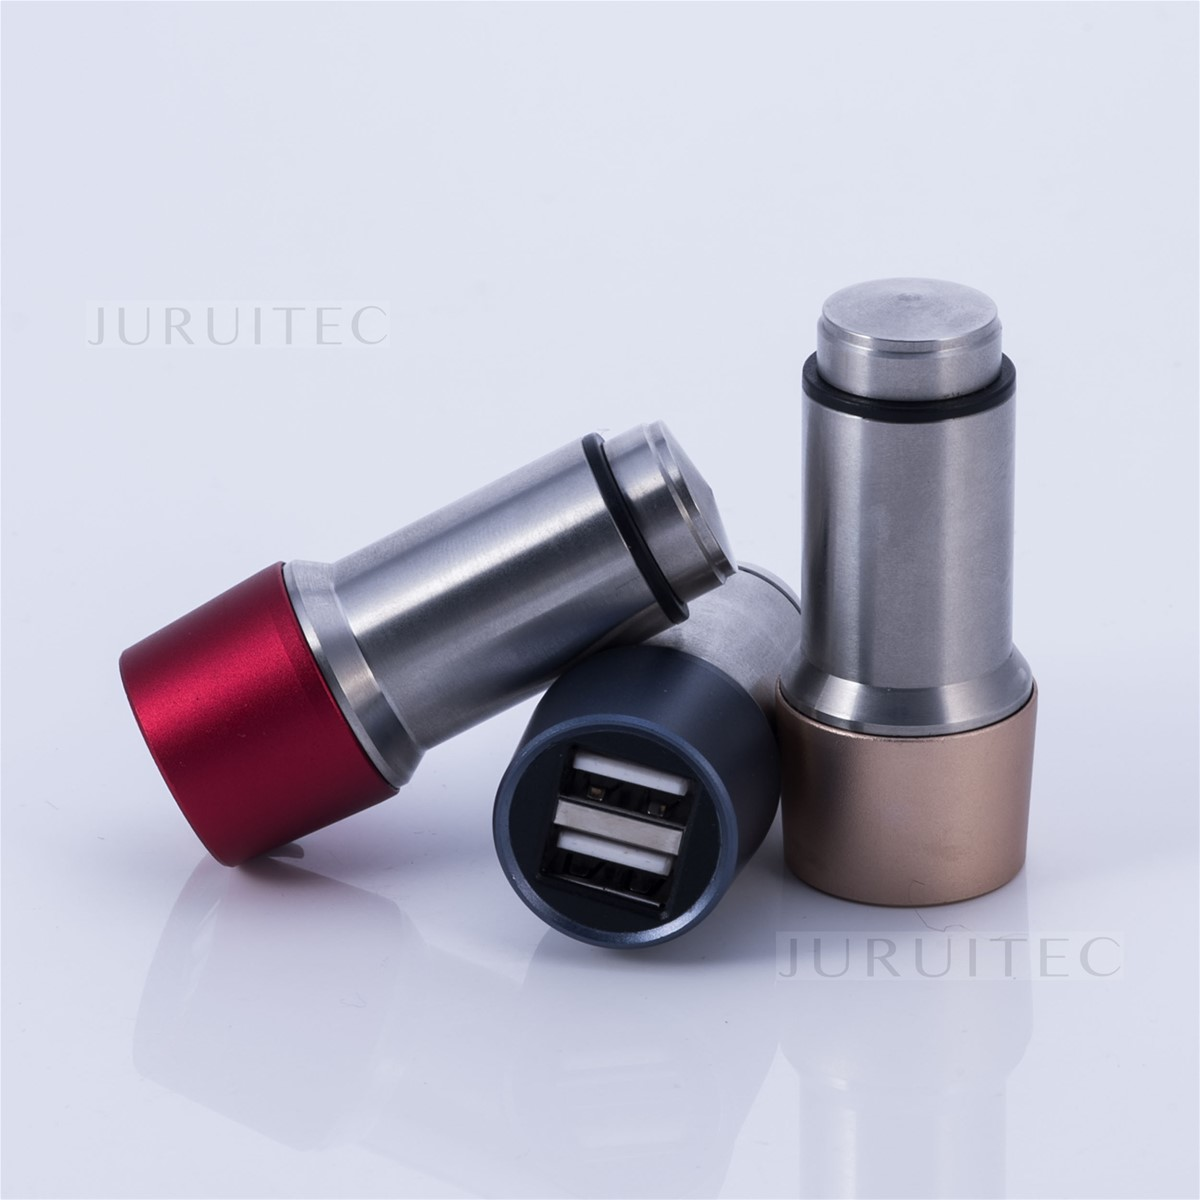 Stainless Steel Dual Ports DC5V 2.4A USB Car Charger